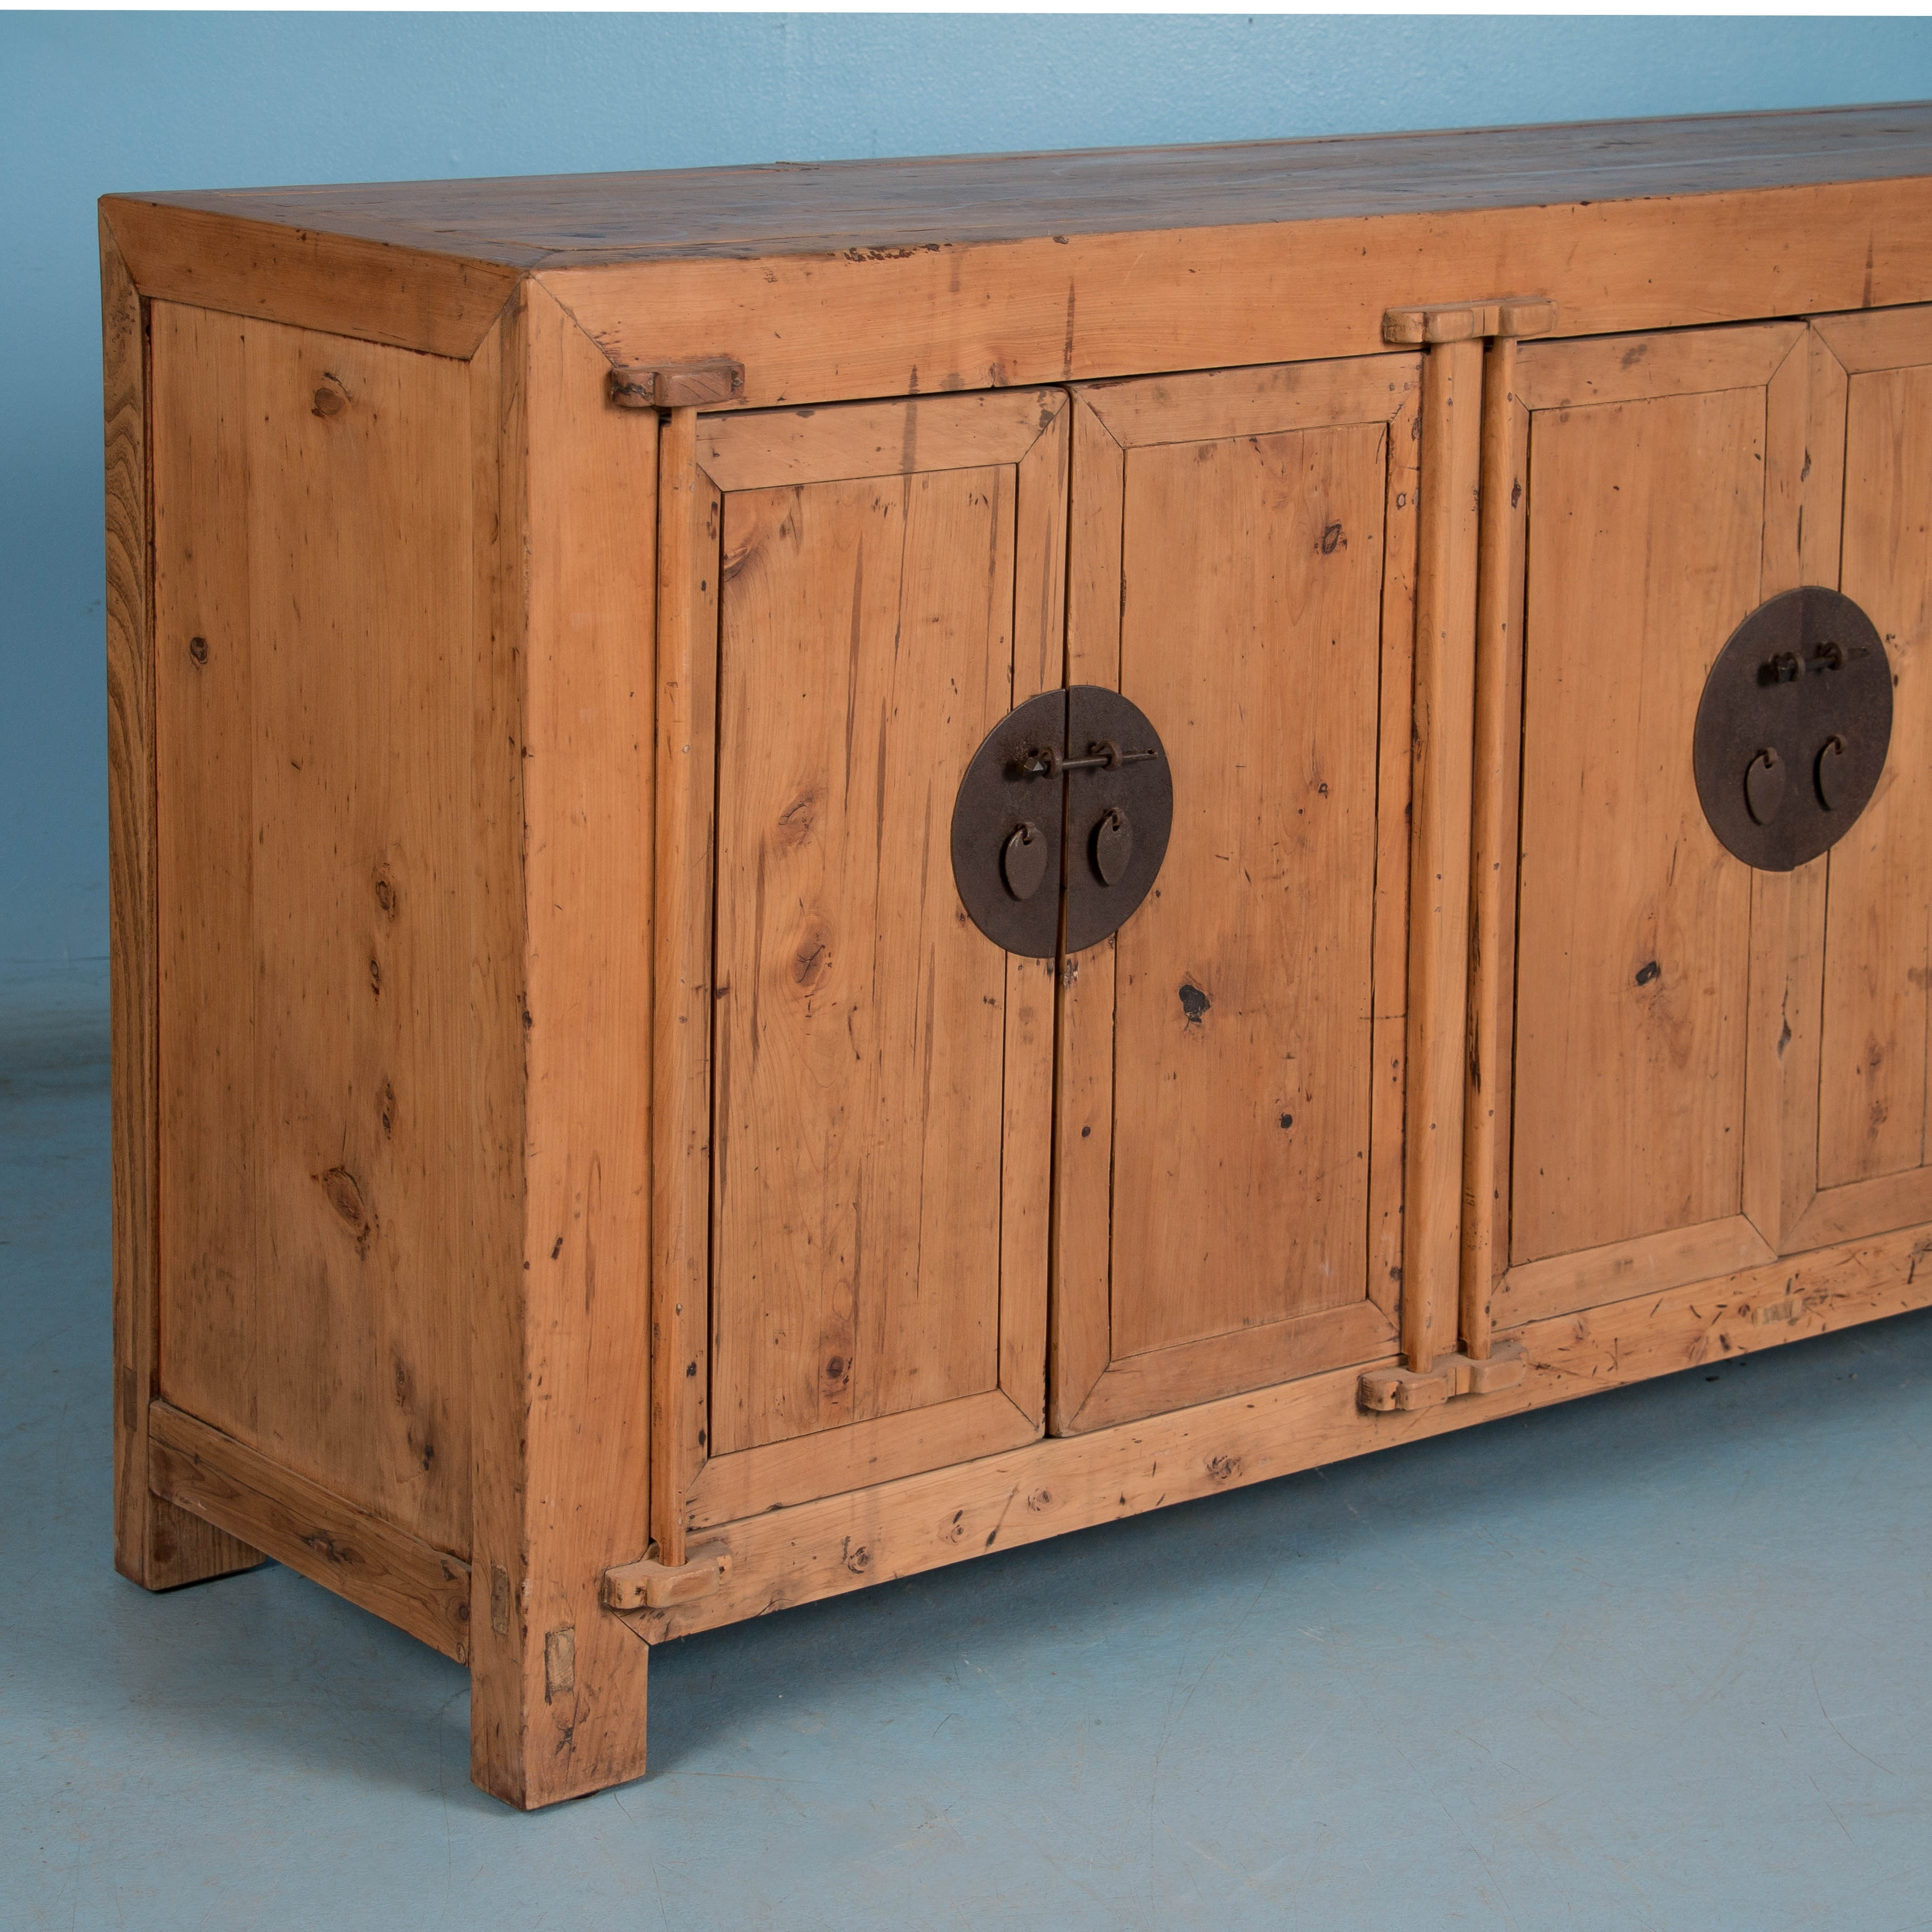 Sideboards | Scandinavian Antiques | Antique Furniture For Sale regarding Natural South Pine Sideboards (Image 25 of 30)